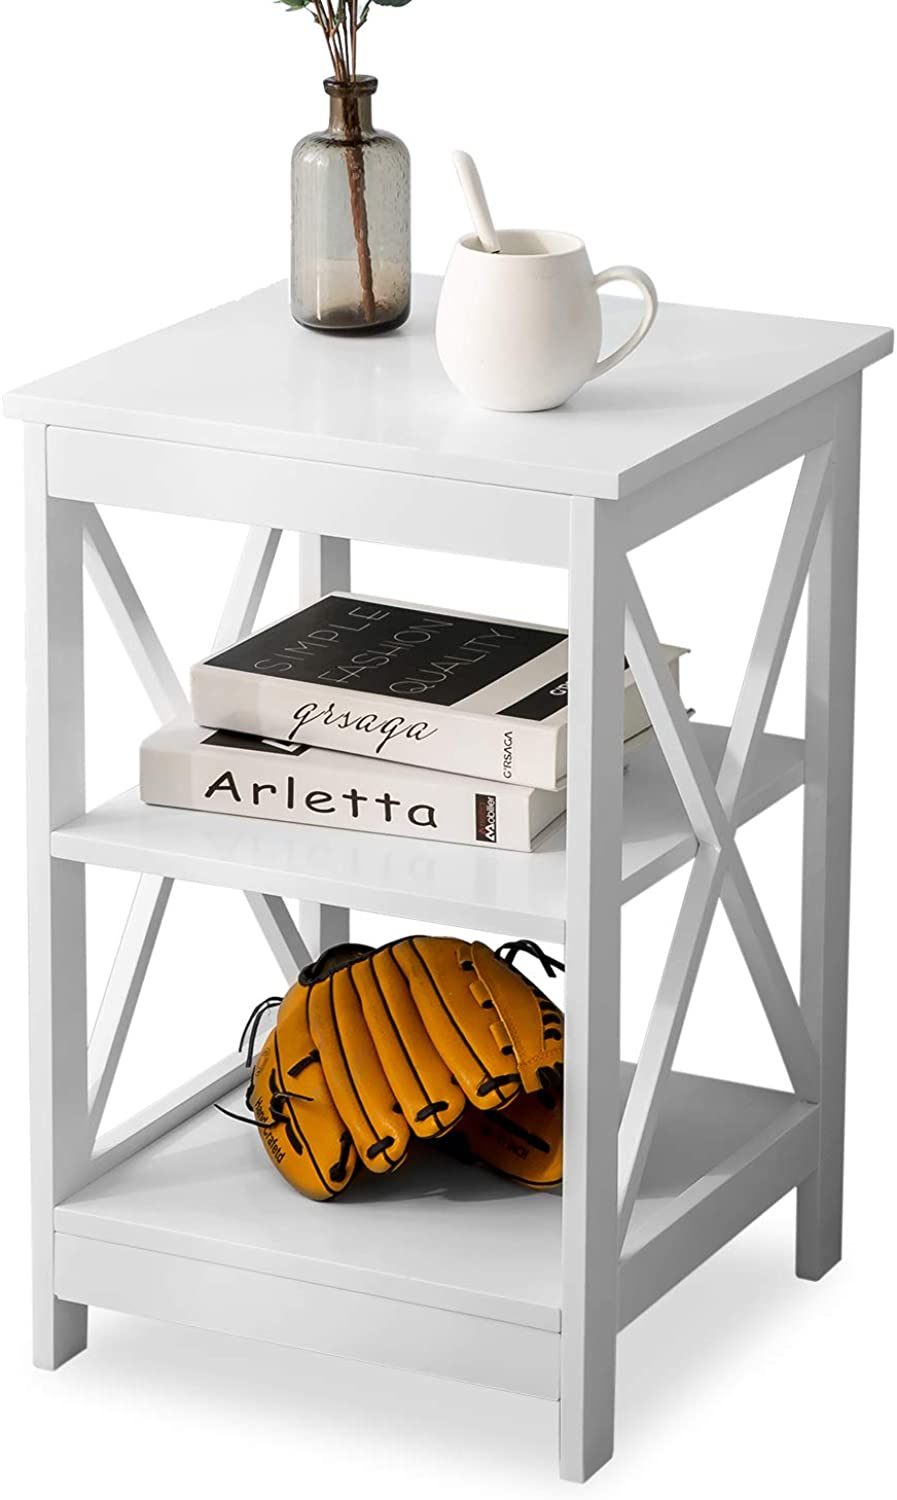 Leisure Zone End Table Side Table Sofa Side Table Storage Shelves with 3 Tiers Bedside table For Living Room Bedroom Kitchen Any Room (White)